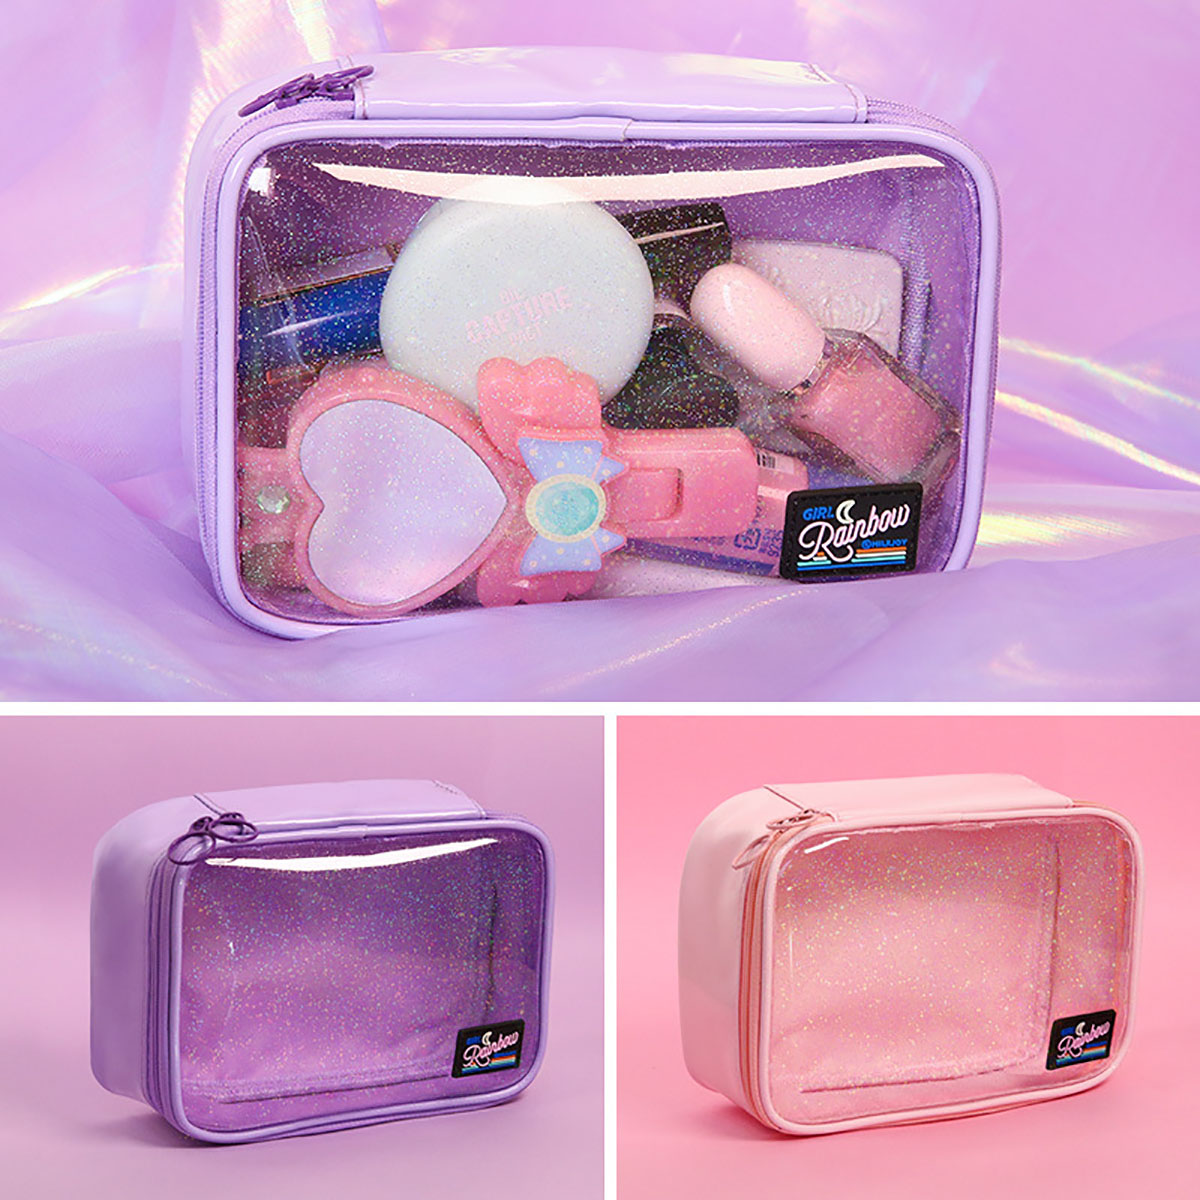 Potable Star Transparent Cosmetic Bag Beauty Storage Case Wash Pouch Toiletry Bag Women PVC Small For Makeup Tools